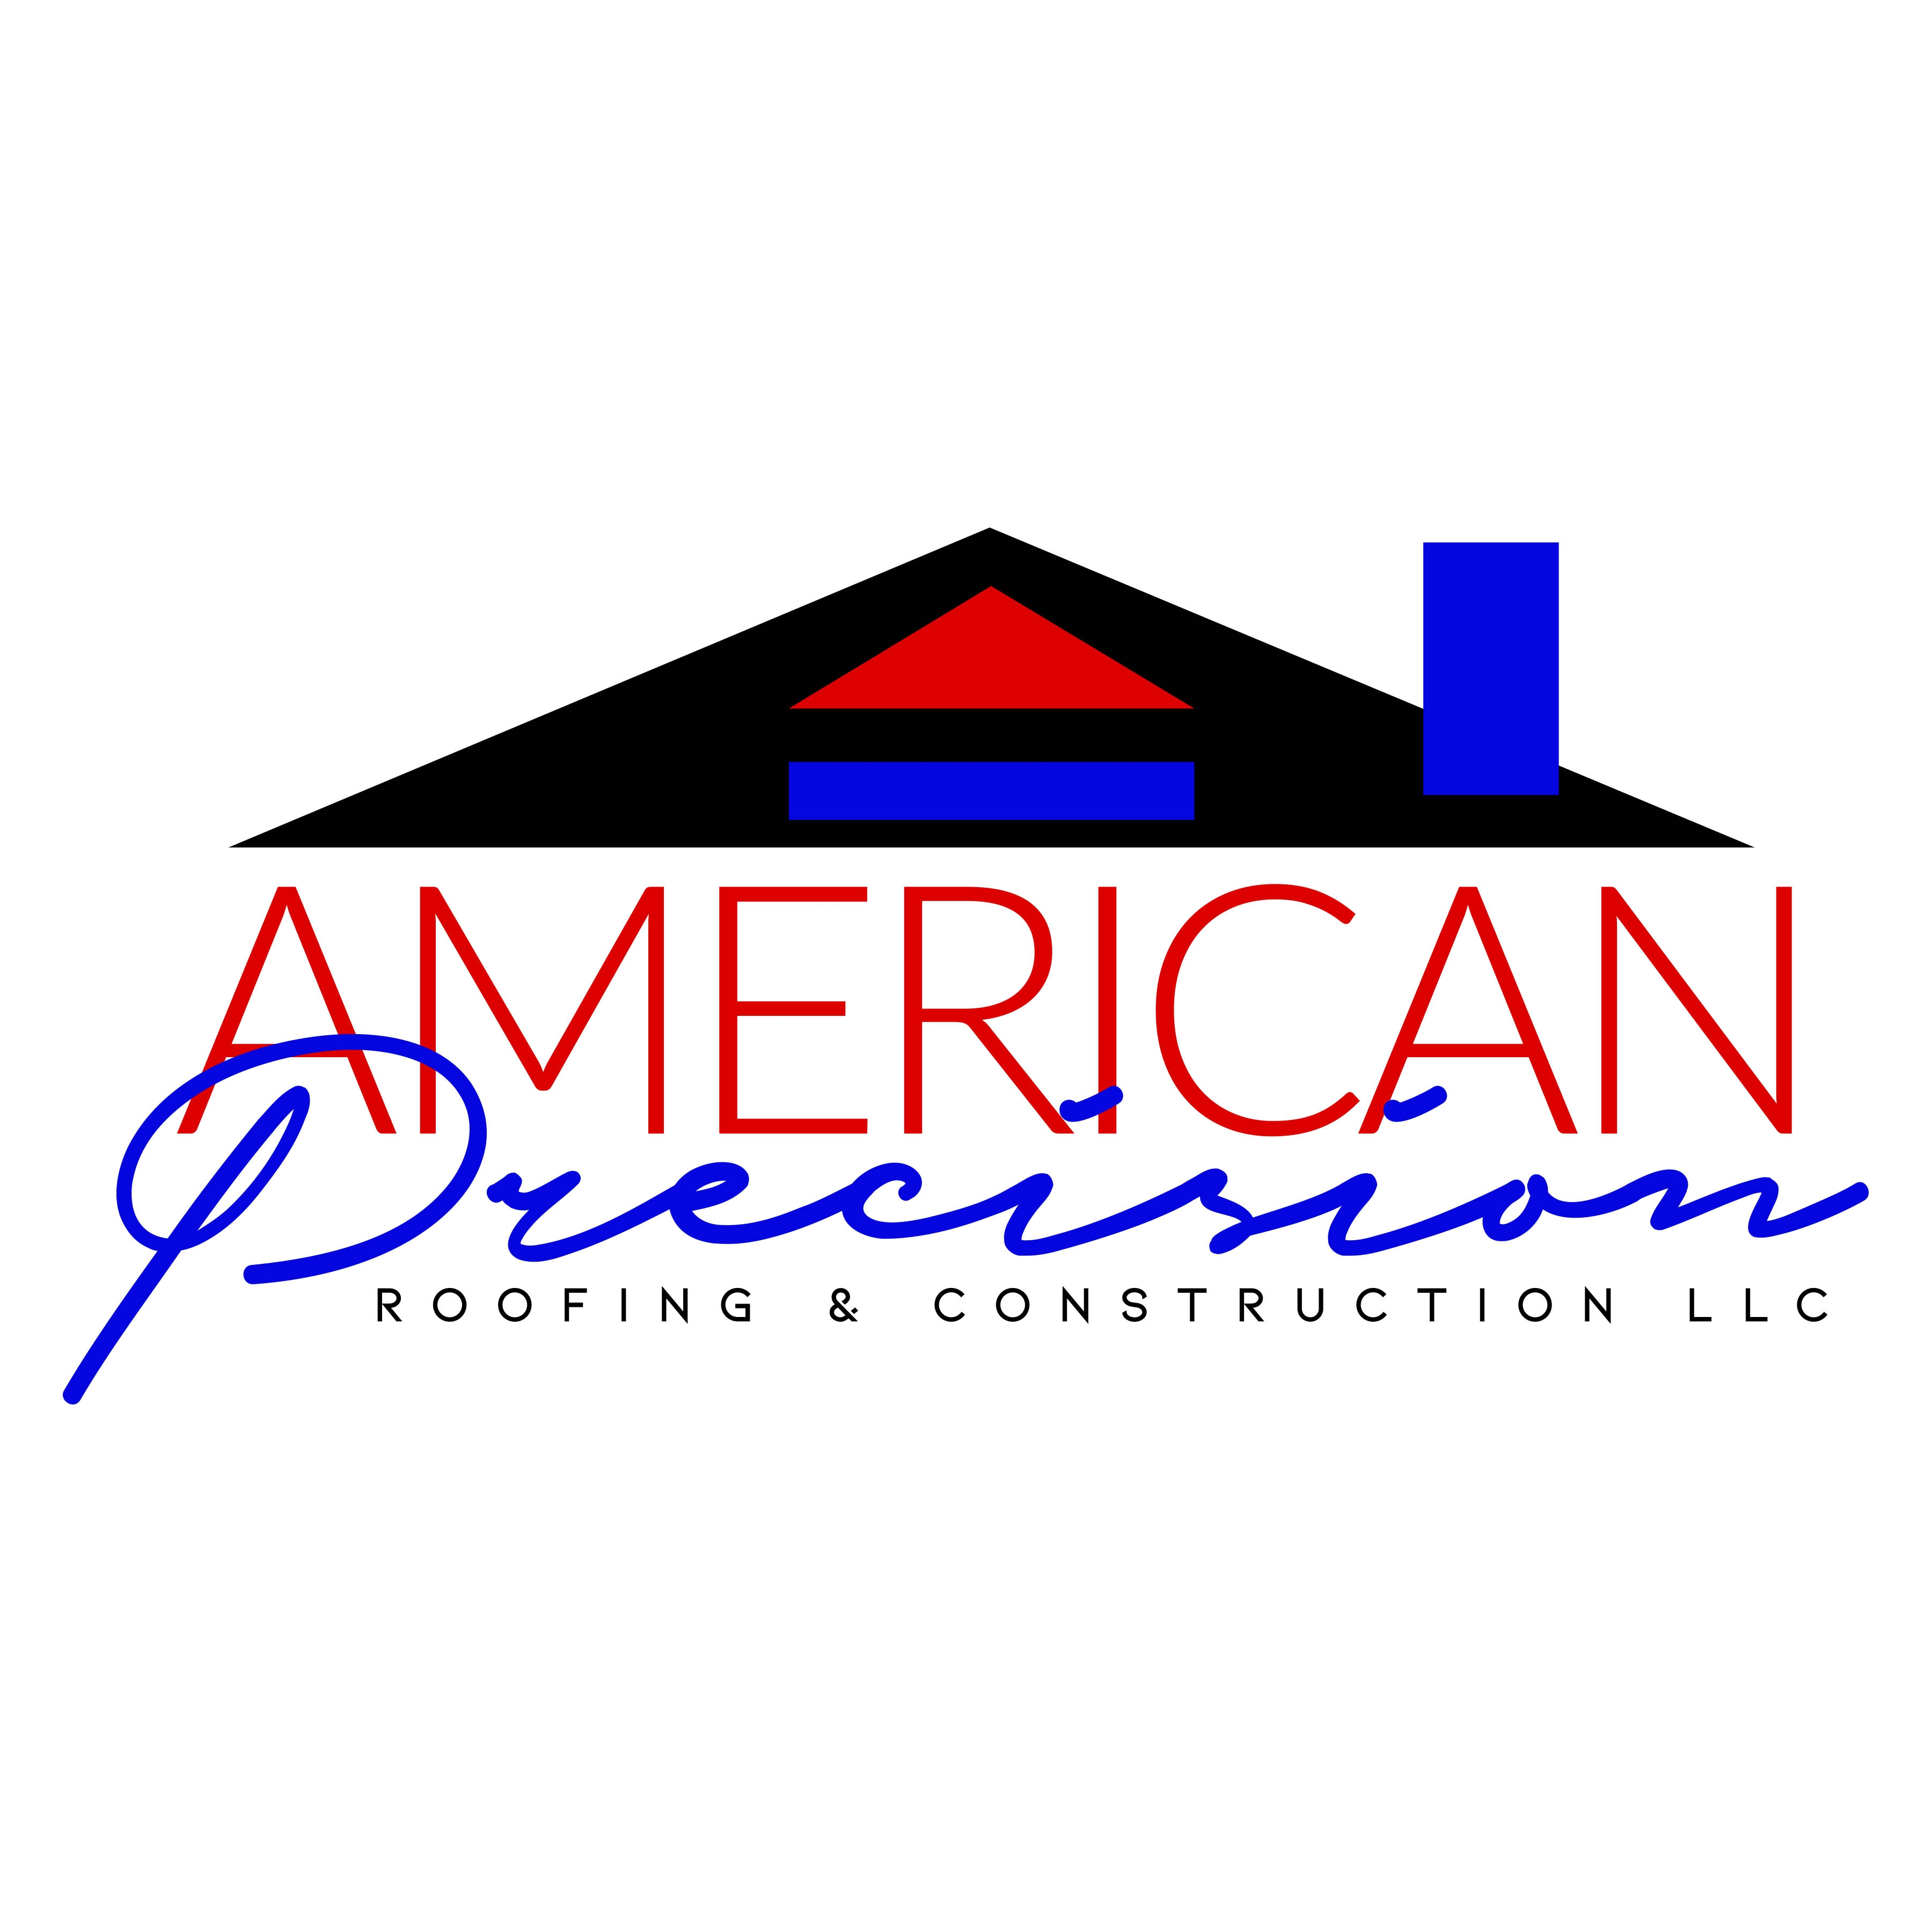 American Precision Roofing & Construction LLC